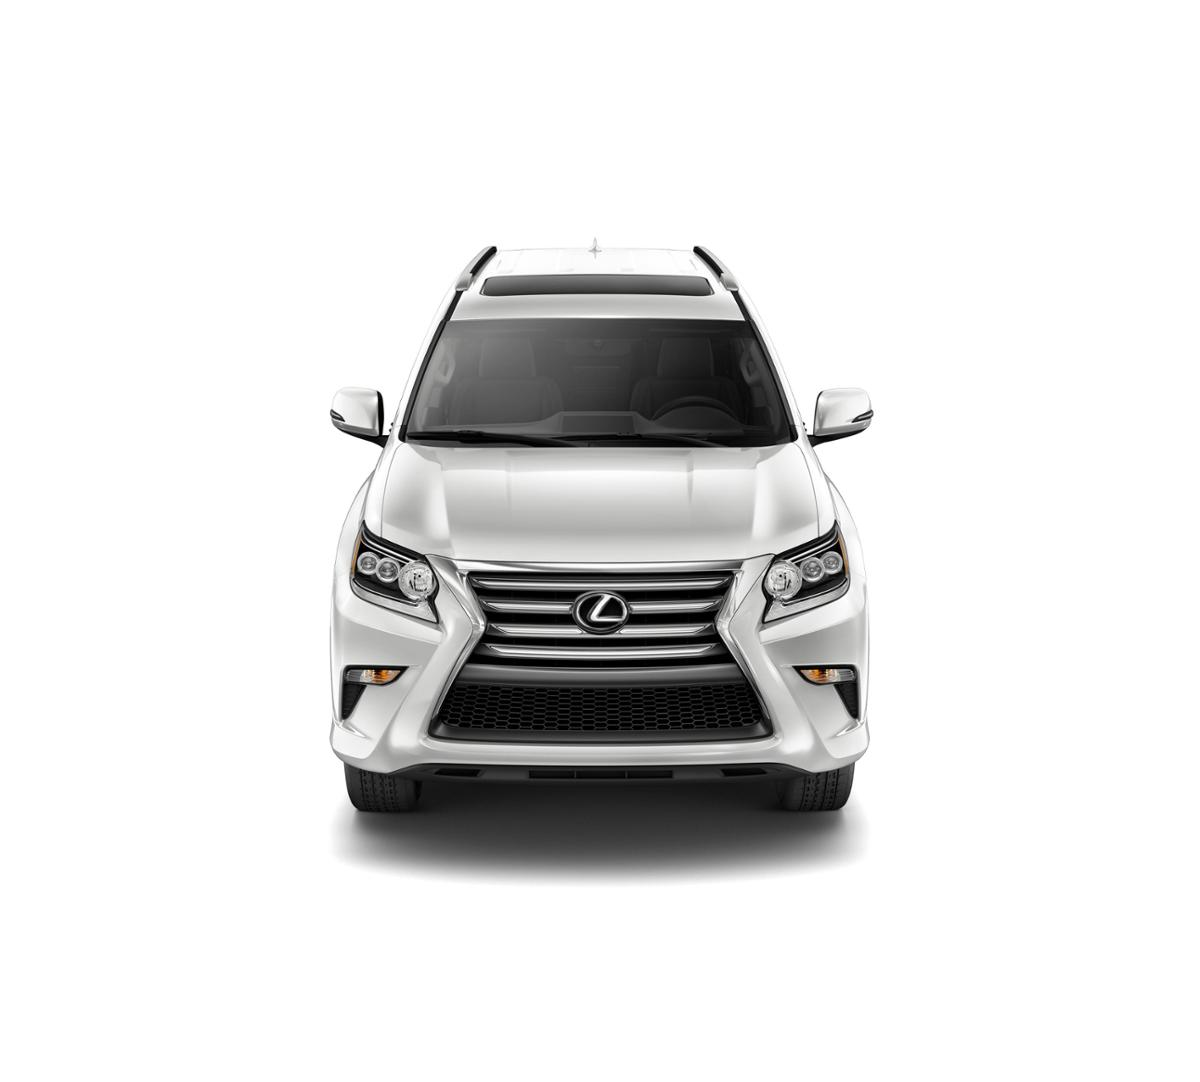 Pre Owned Lexus Gx 460: East Haven Lexus GX 460 2018 Starfire Pearl: Used Suv For